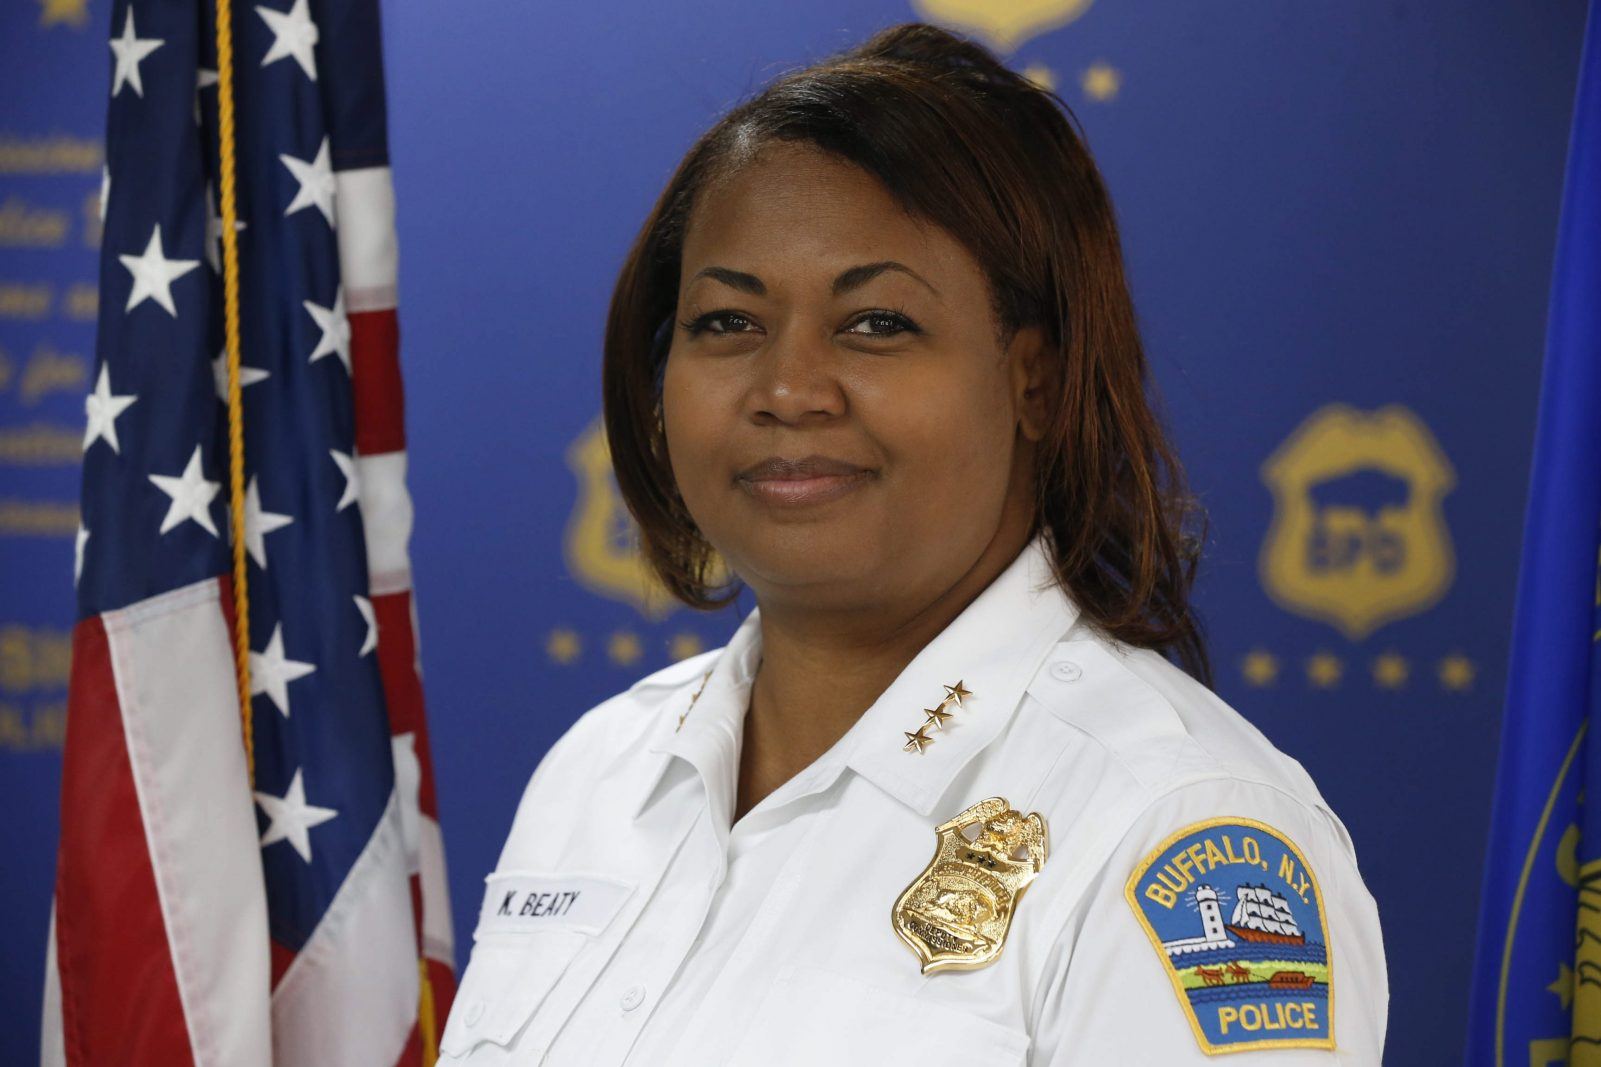 New Deputy Police Commissioner Kimberly L. Beaty at headquarters in Buffalo onMonday, July 14, 2014. (Robert Kirkham/Buffalo News)